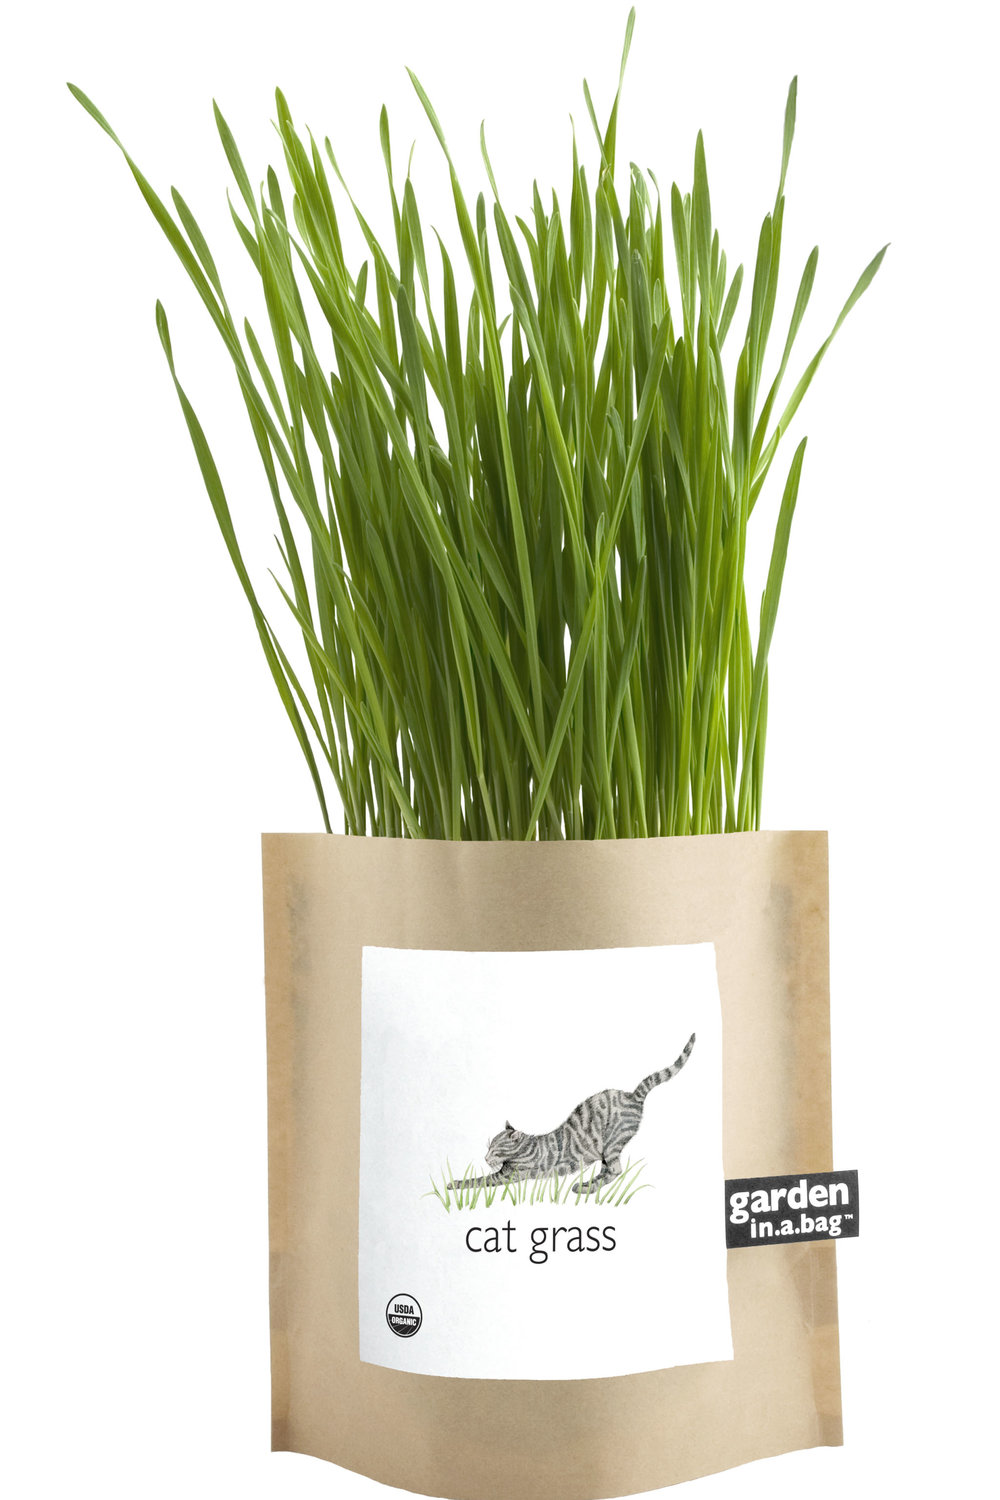 GIB Gr Cat Grass.jpg